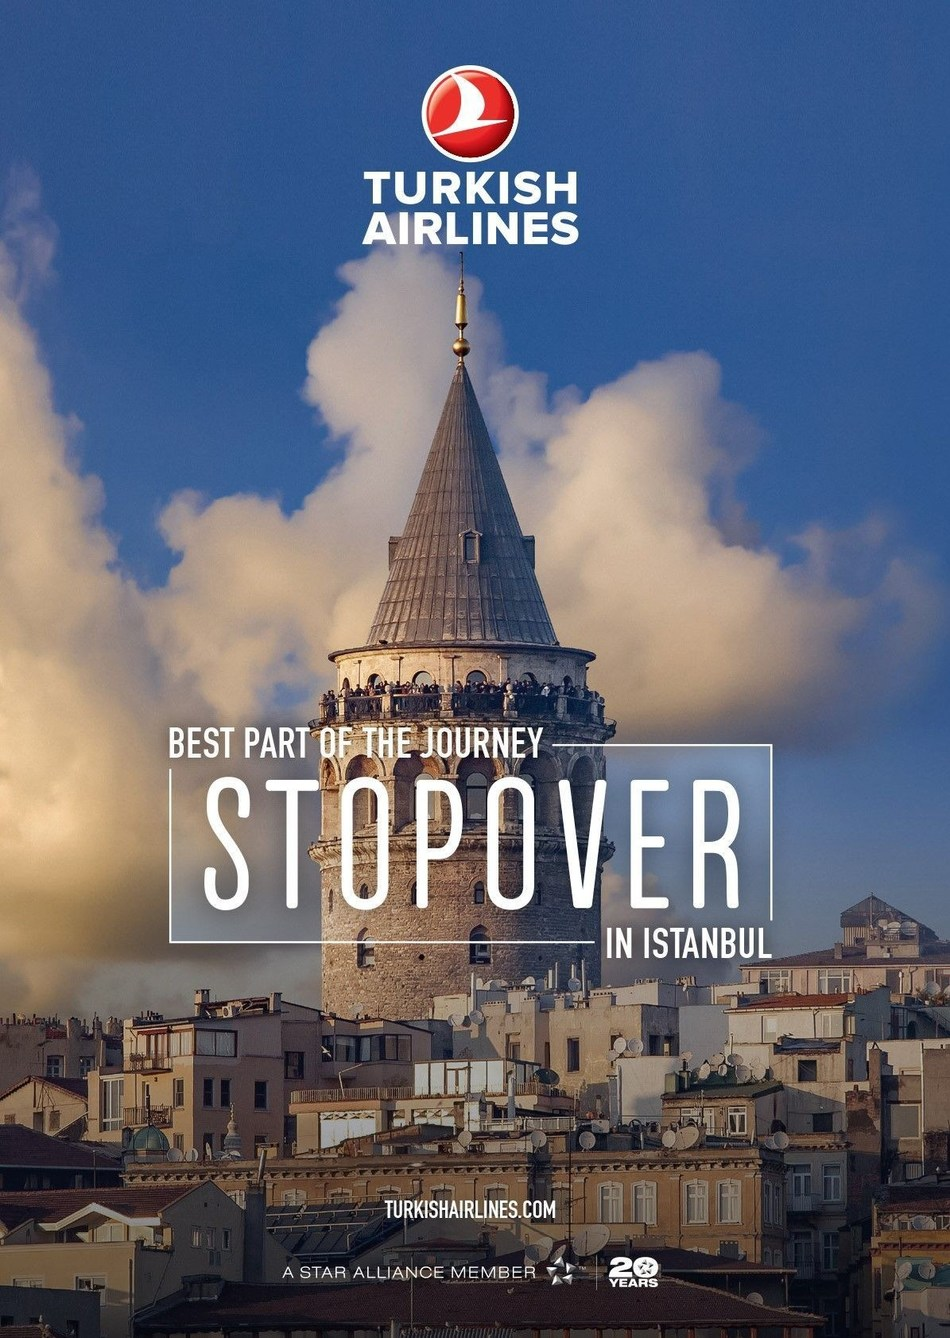 Transfer passengers now will have an opportunity to discover Istanbul, the seamless hub of the global carrier, through its new 'Stopover' service (PRNewsfoto/Turkish Airlines)